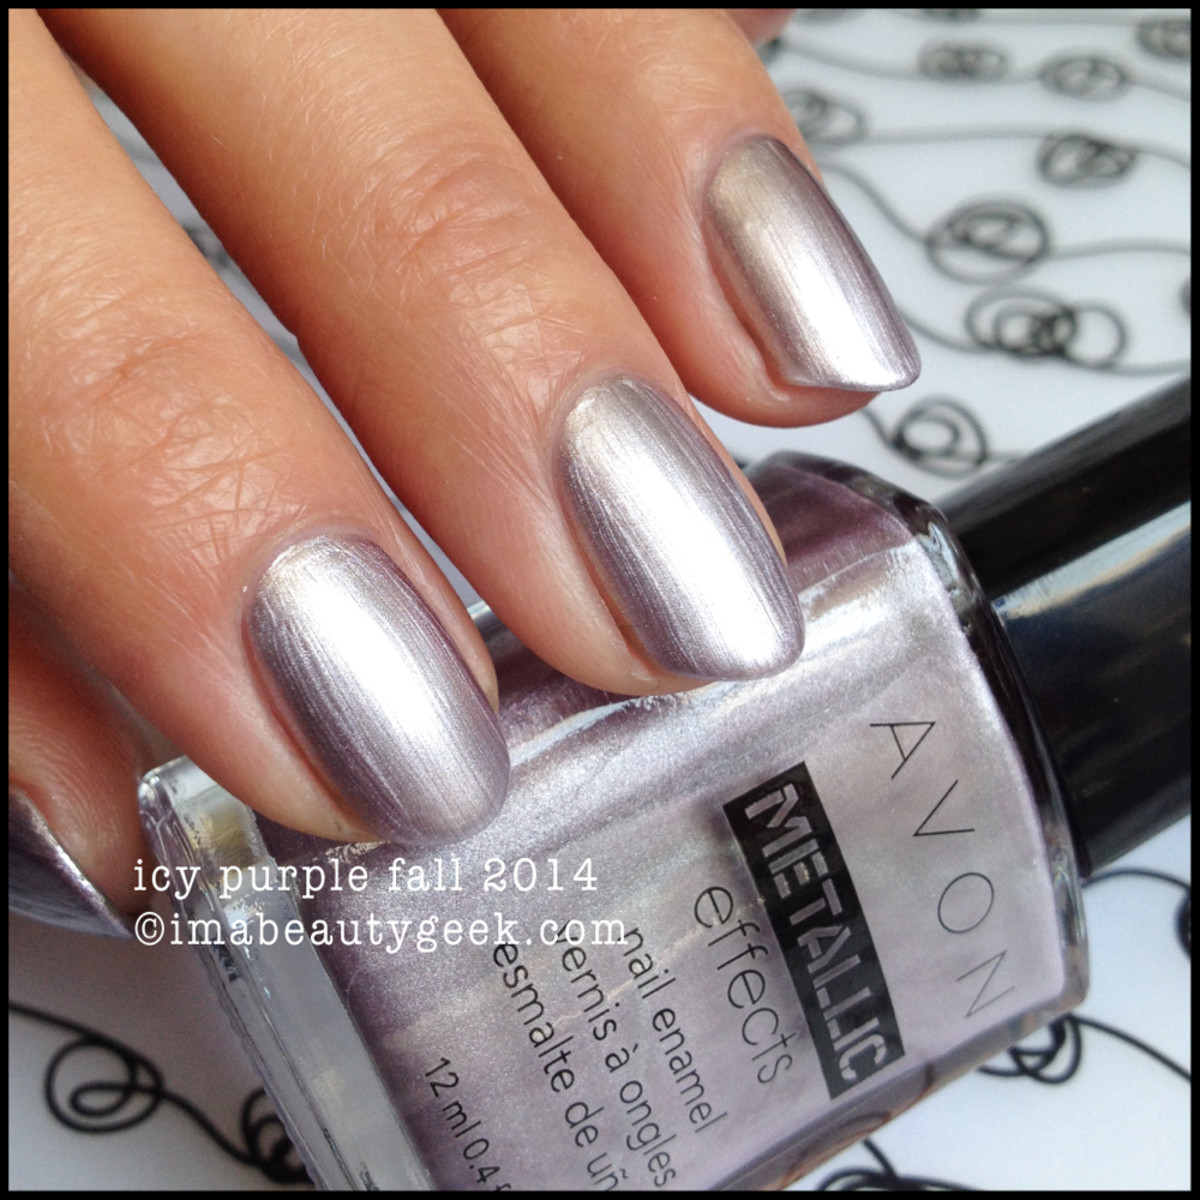 Avon Polish Fall 2014 Icy Purple Metallic Effects